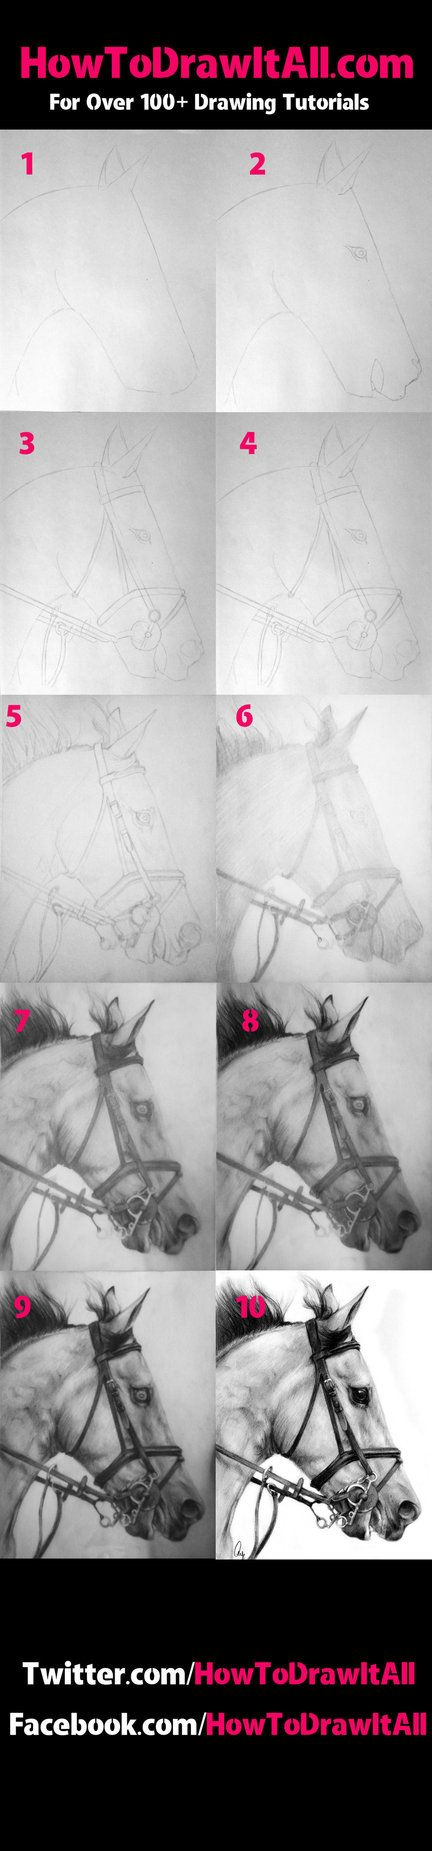 [link] TO GO TO THE FULL TUTORIAL WITH WORDS!! More Horse Tutorials- MORE DRAWING TUTORIALS AT WWW.HOWTODRAWITALL.COM FACEBOOK.COM/HOWTODRAWITALL TWITTER.COM/HOWTODRAWITALL